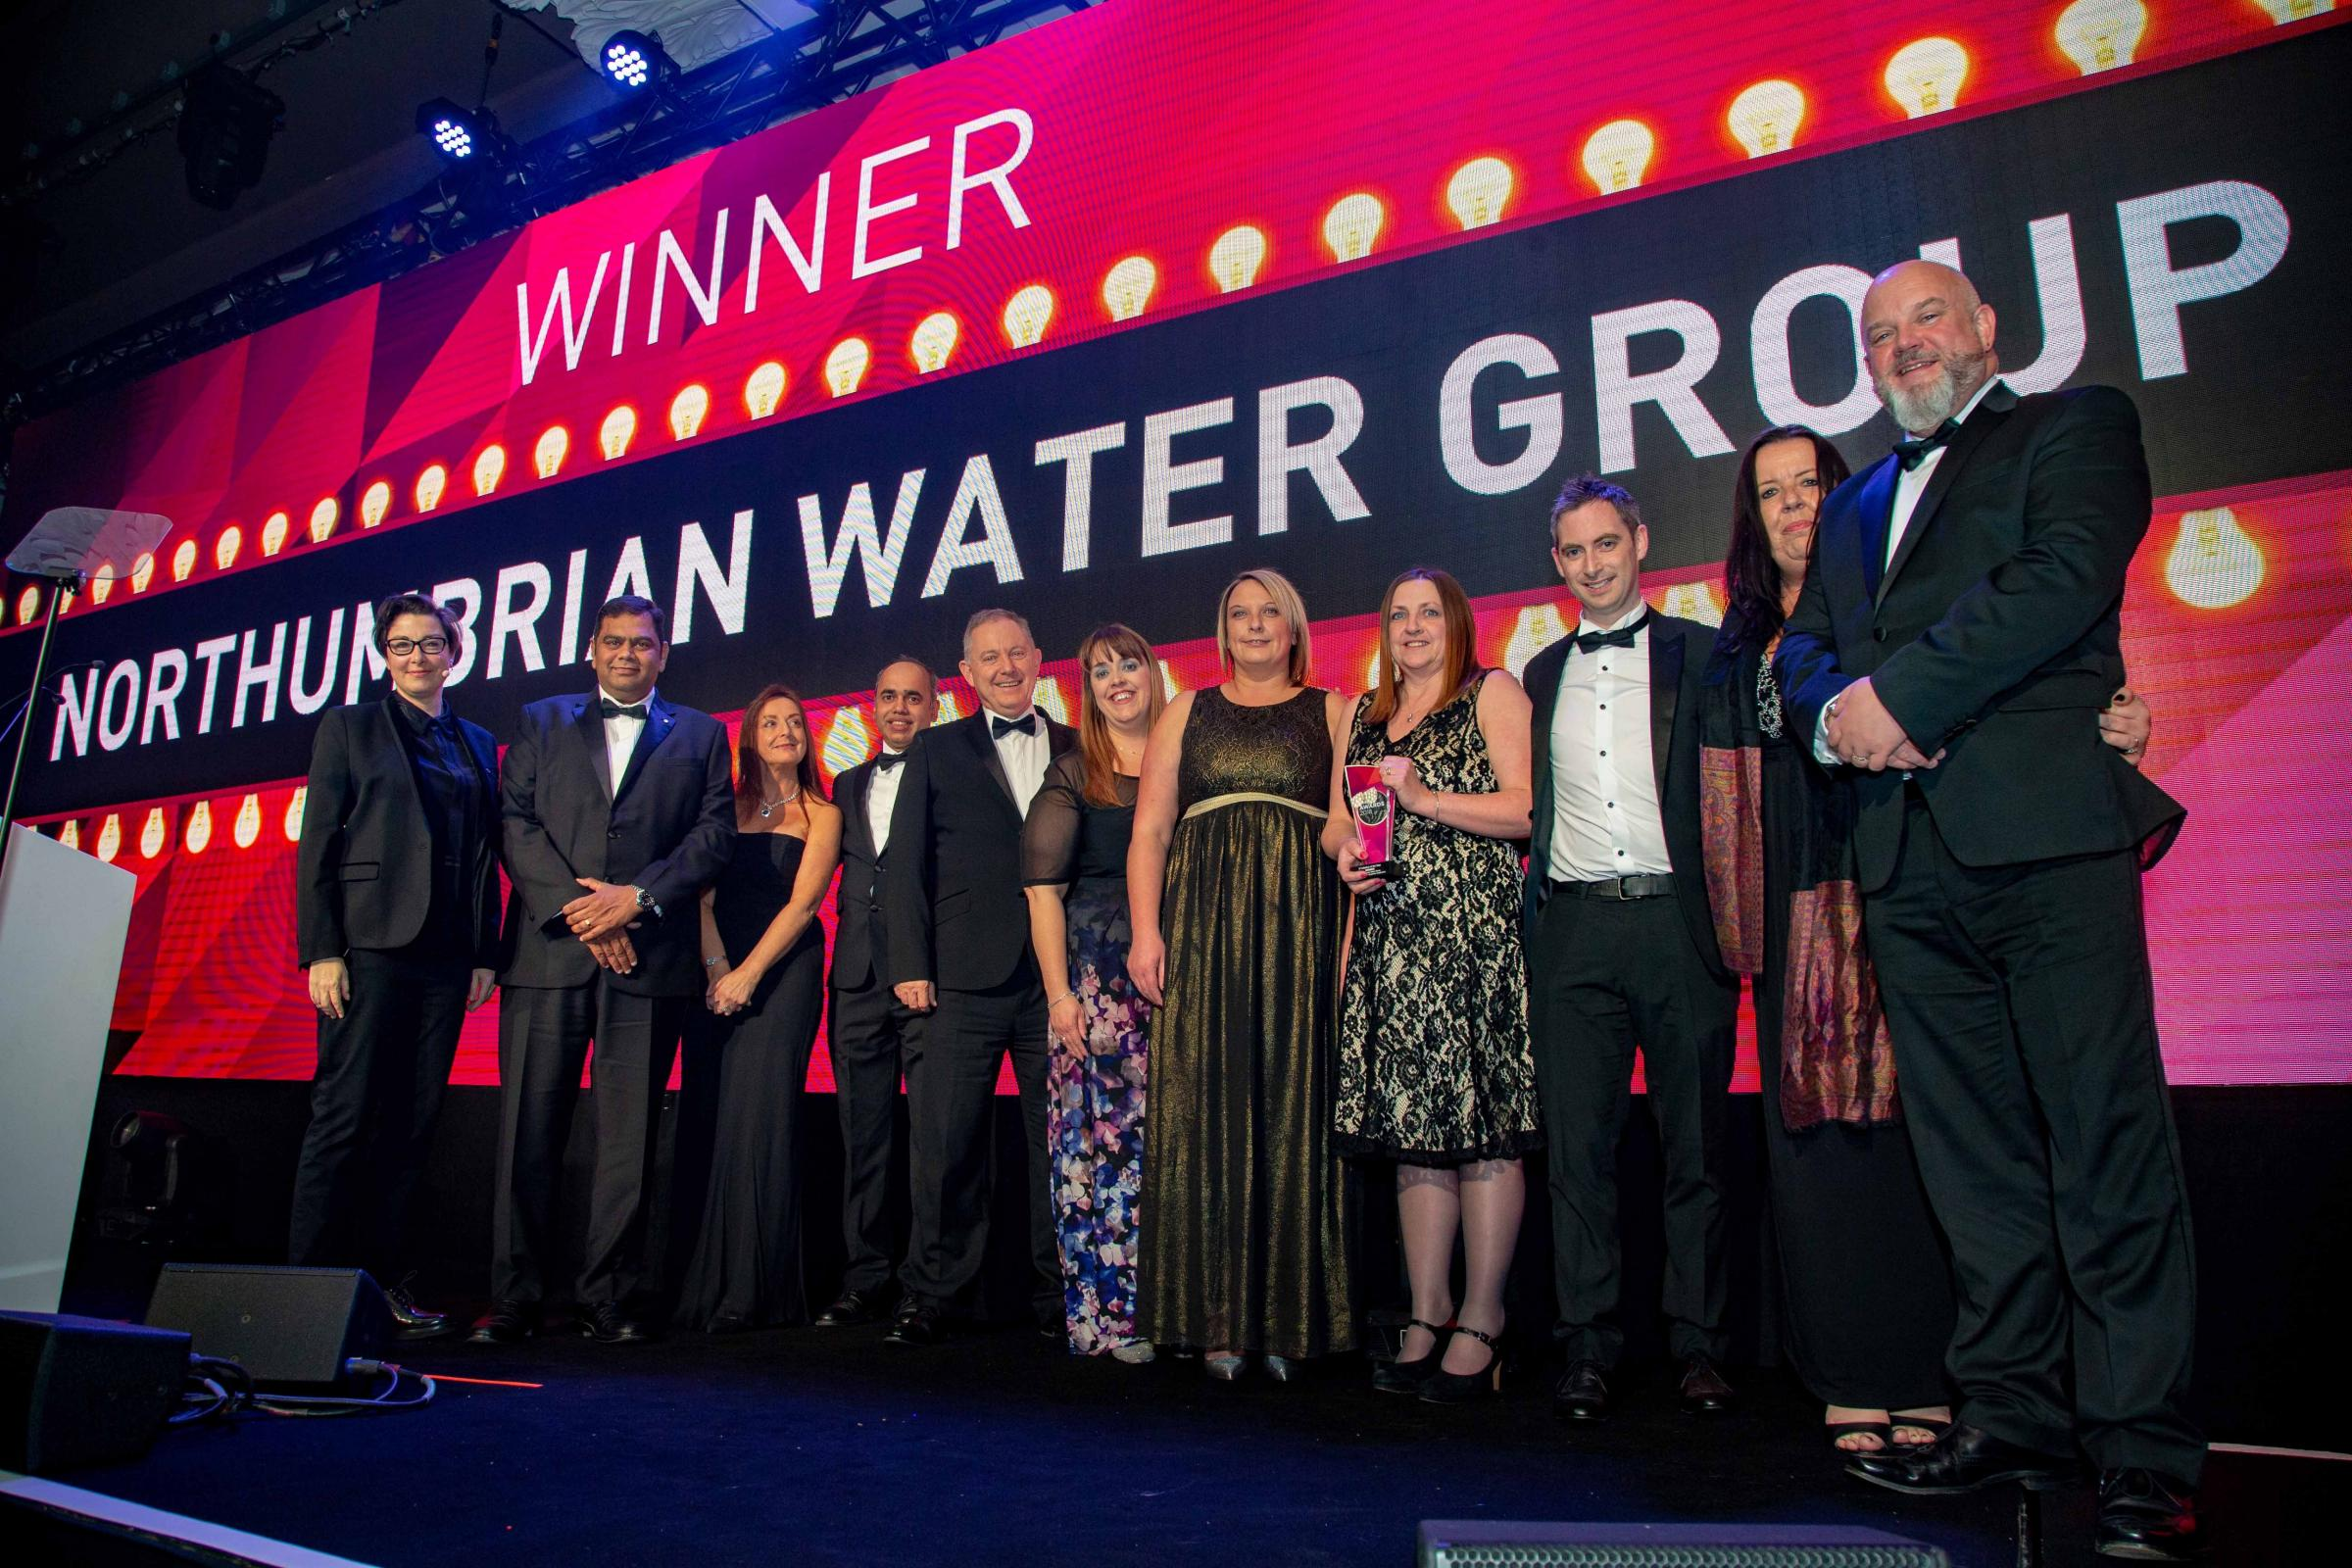 Members of Northumbrian Water Group collect their Utility Week Award.